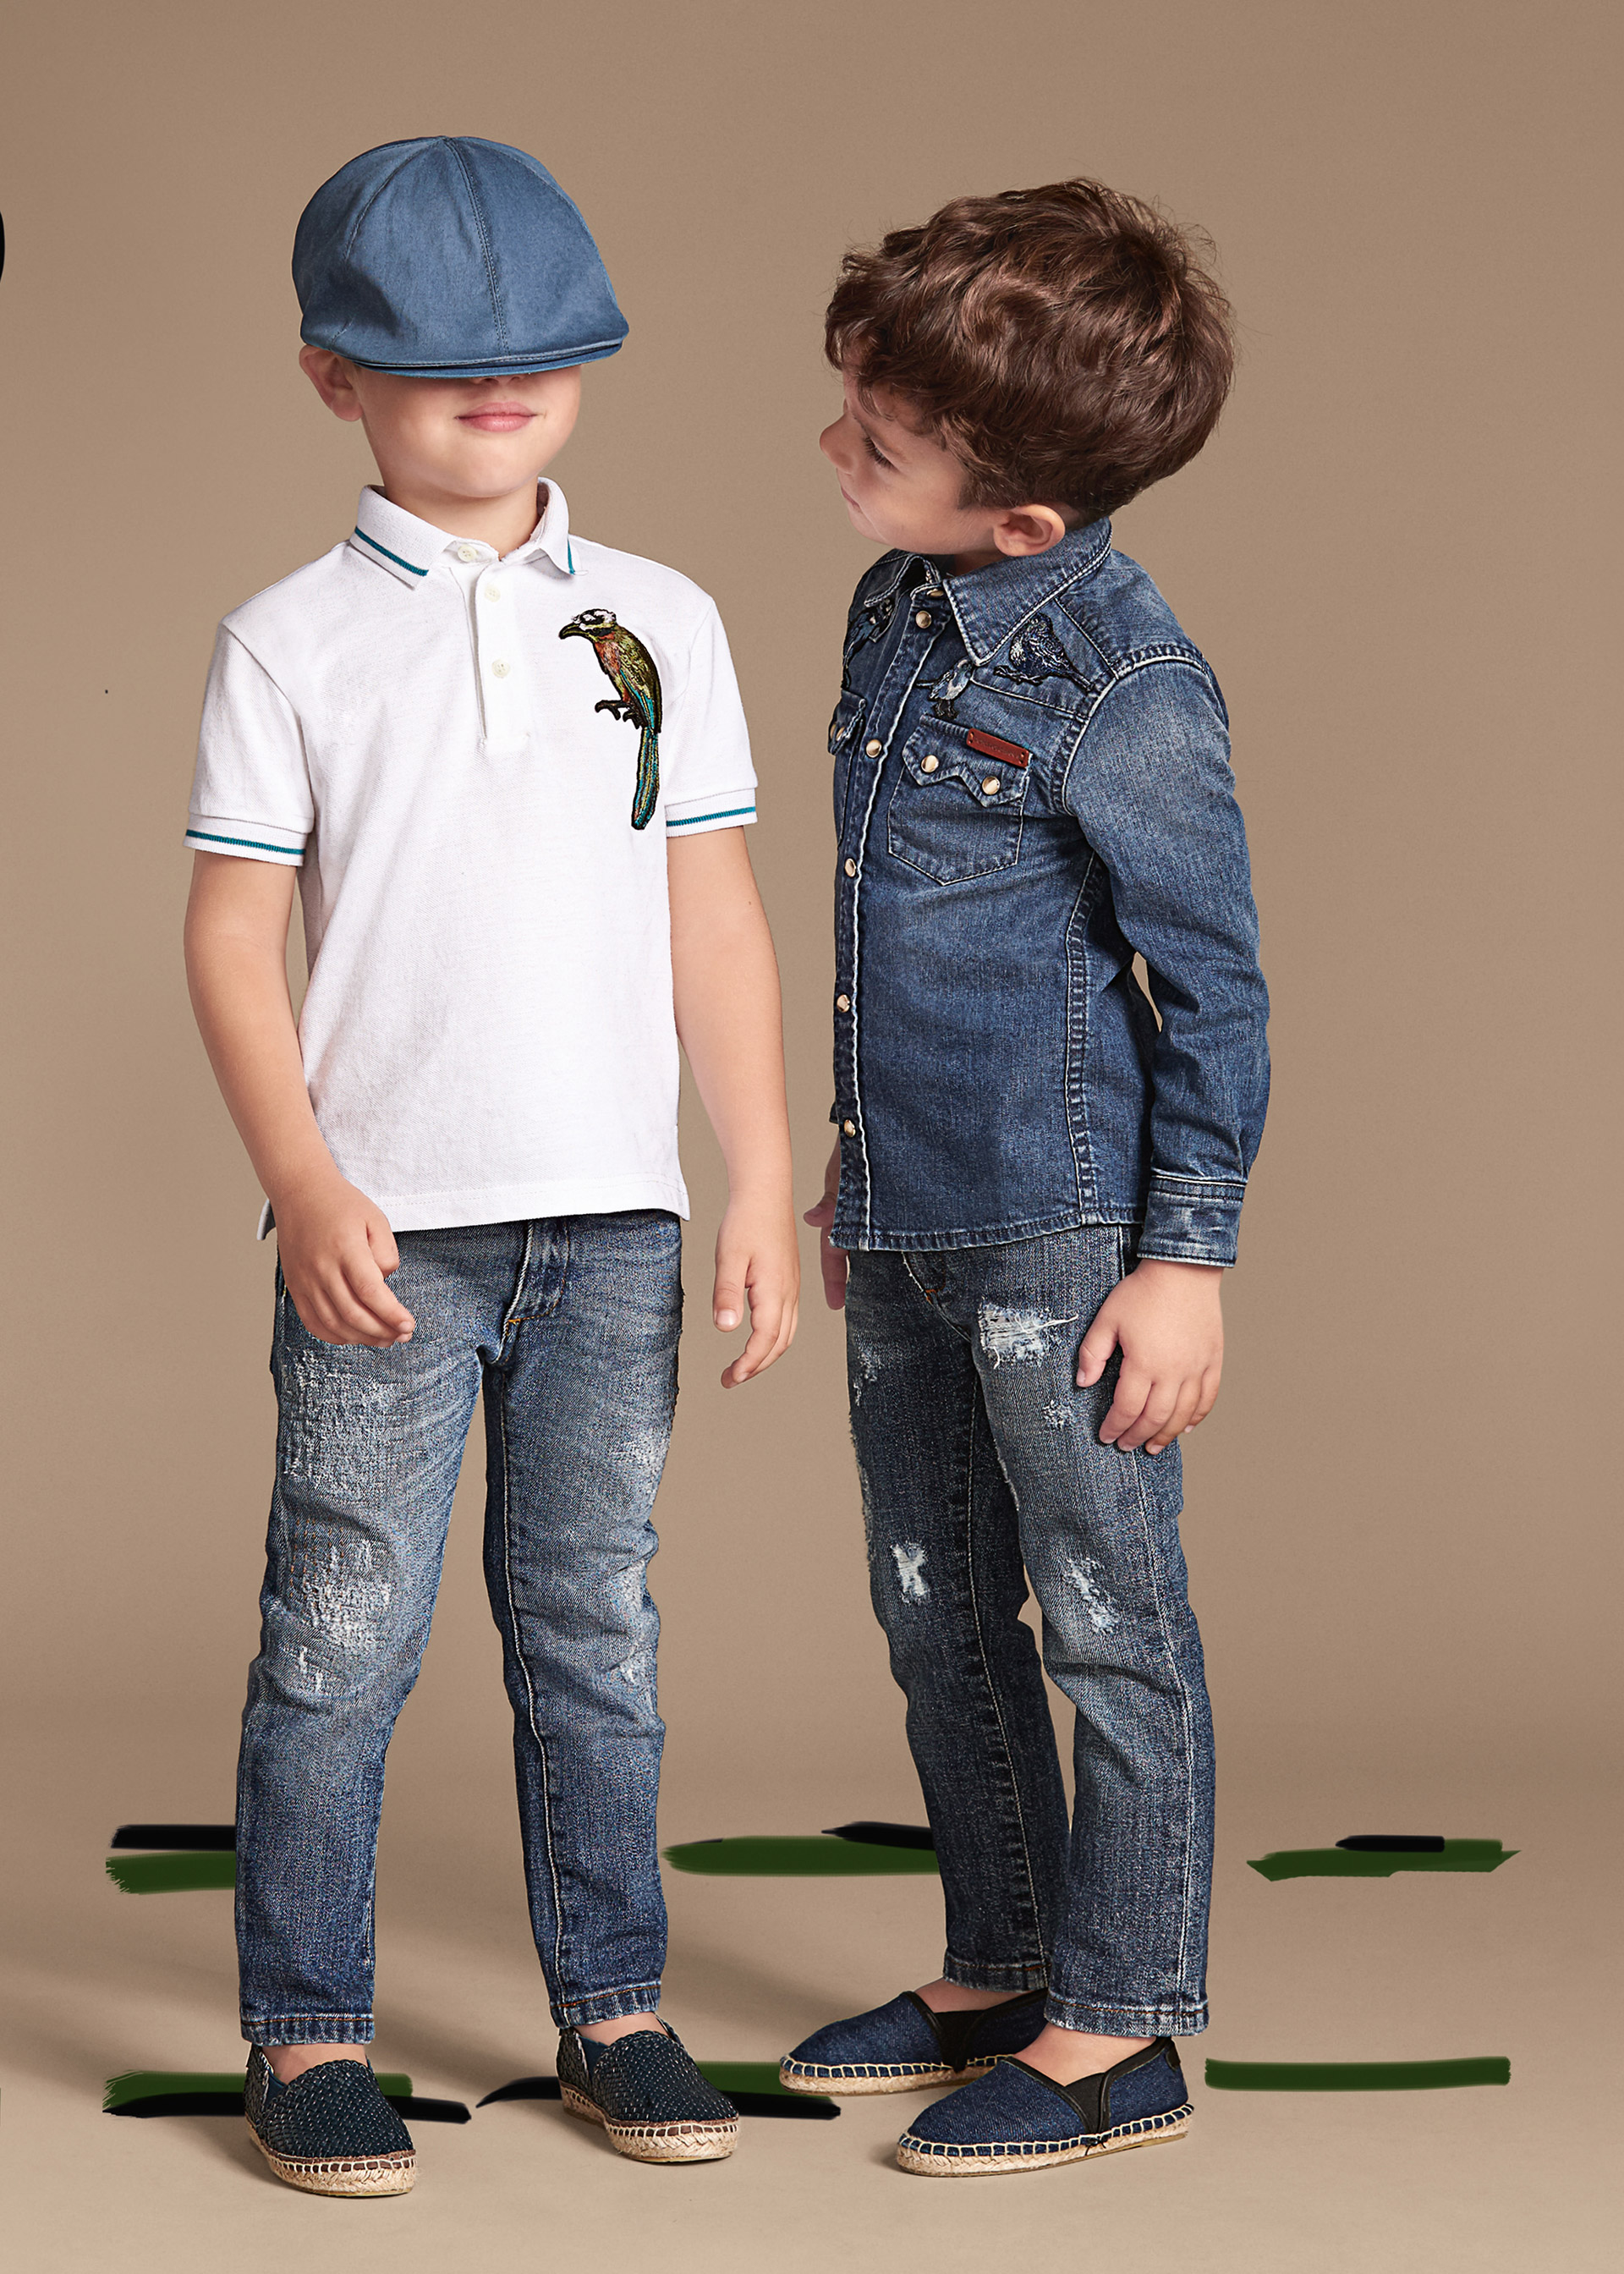 dolce-and-gabbana-summer-2016-child-collection-2016-designer-clothes-kids